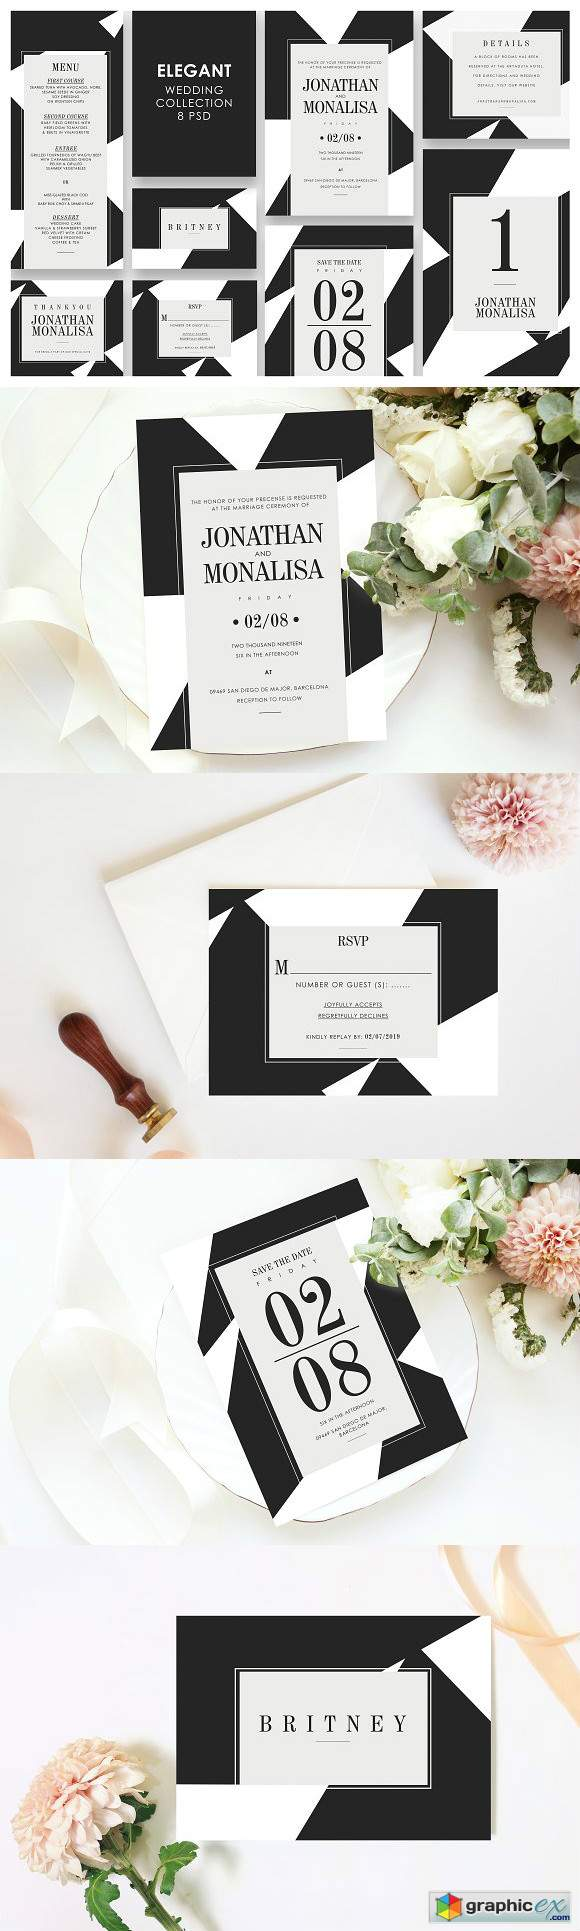 Elegant Wedding Invitation Set 3303795